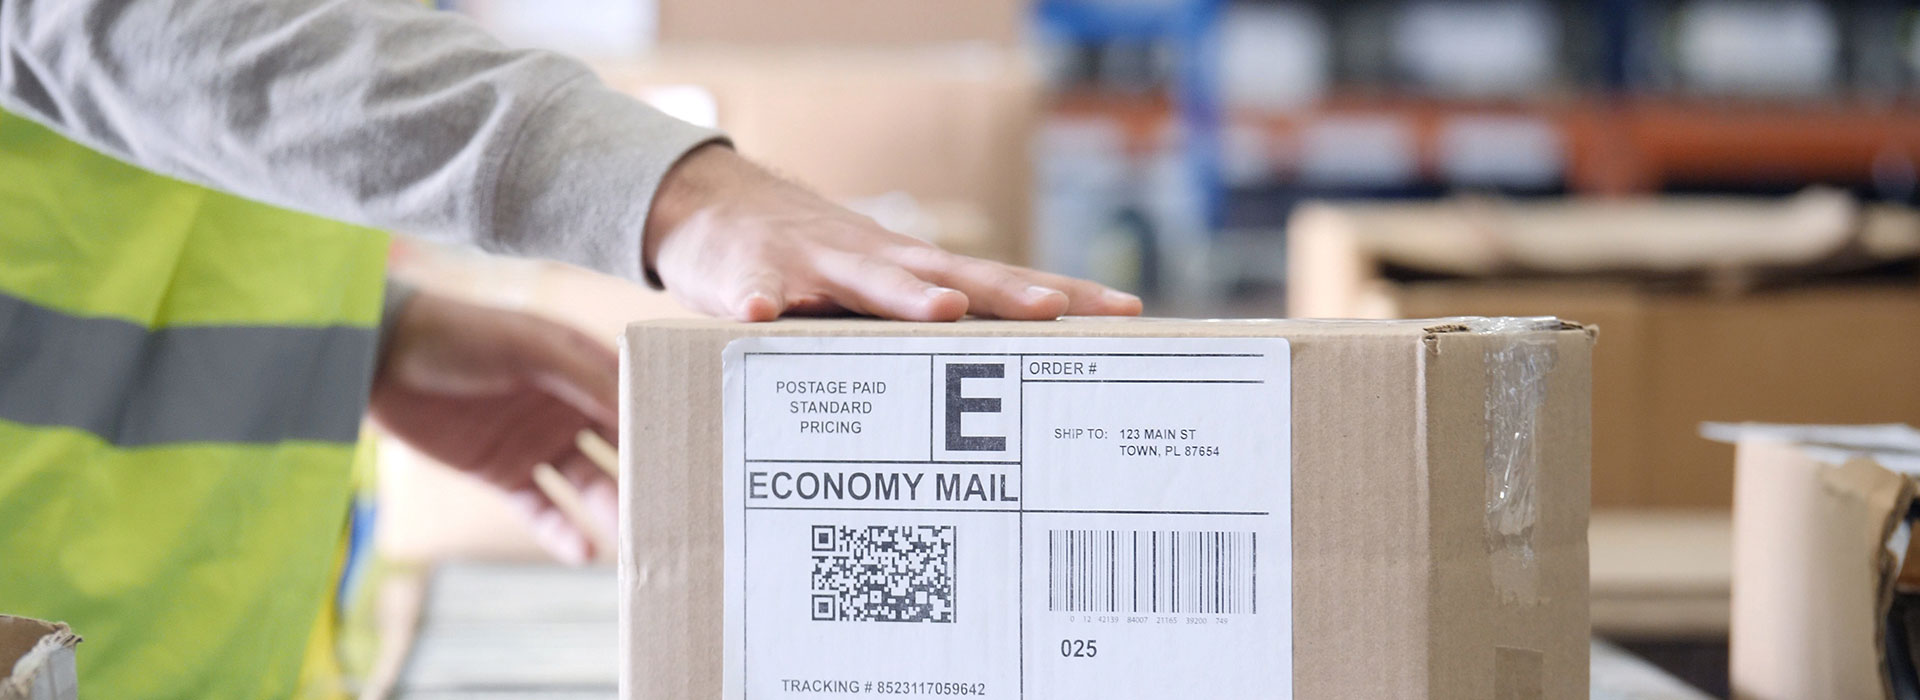 A direct thermal-printed label on a package ready for shipment